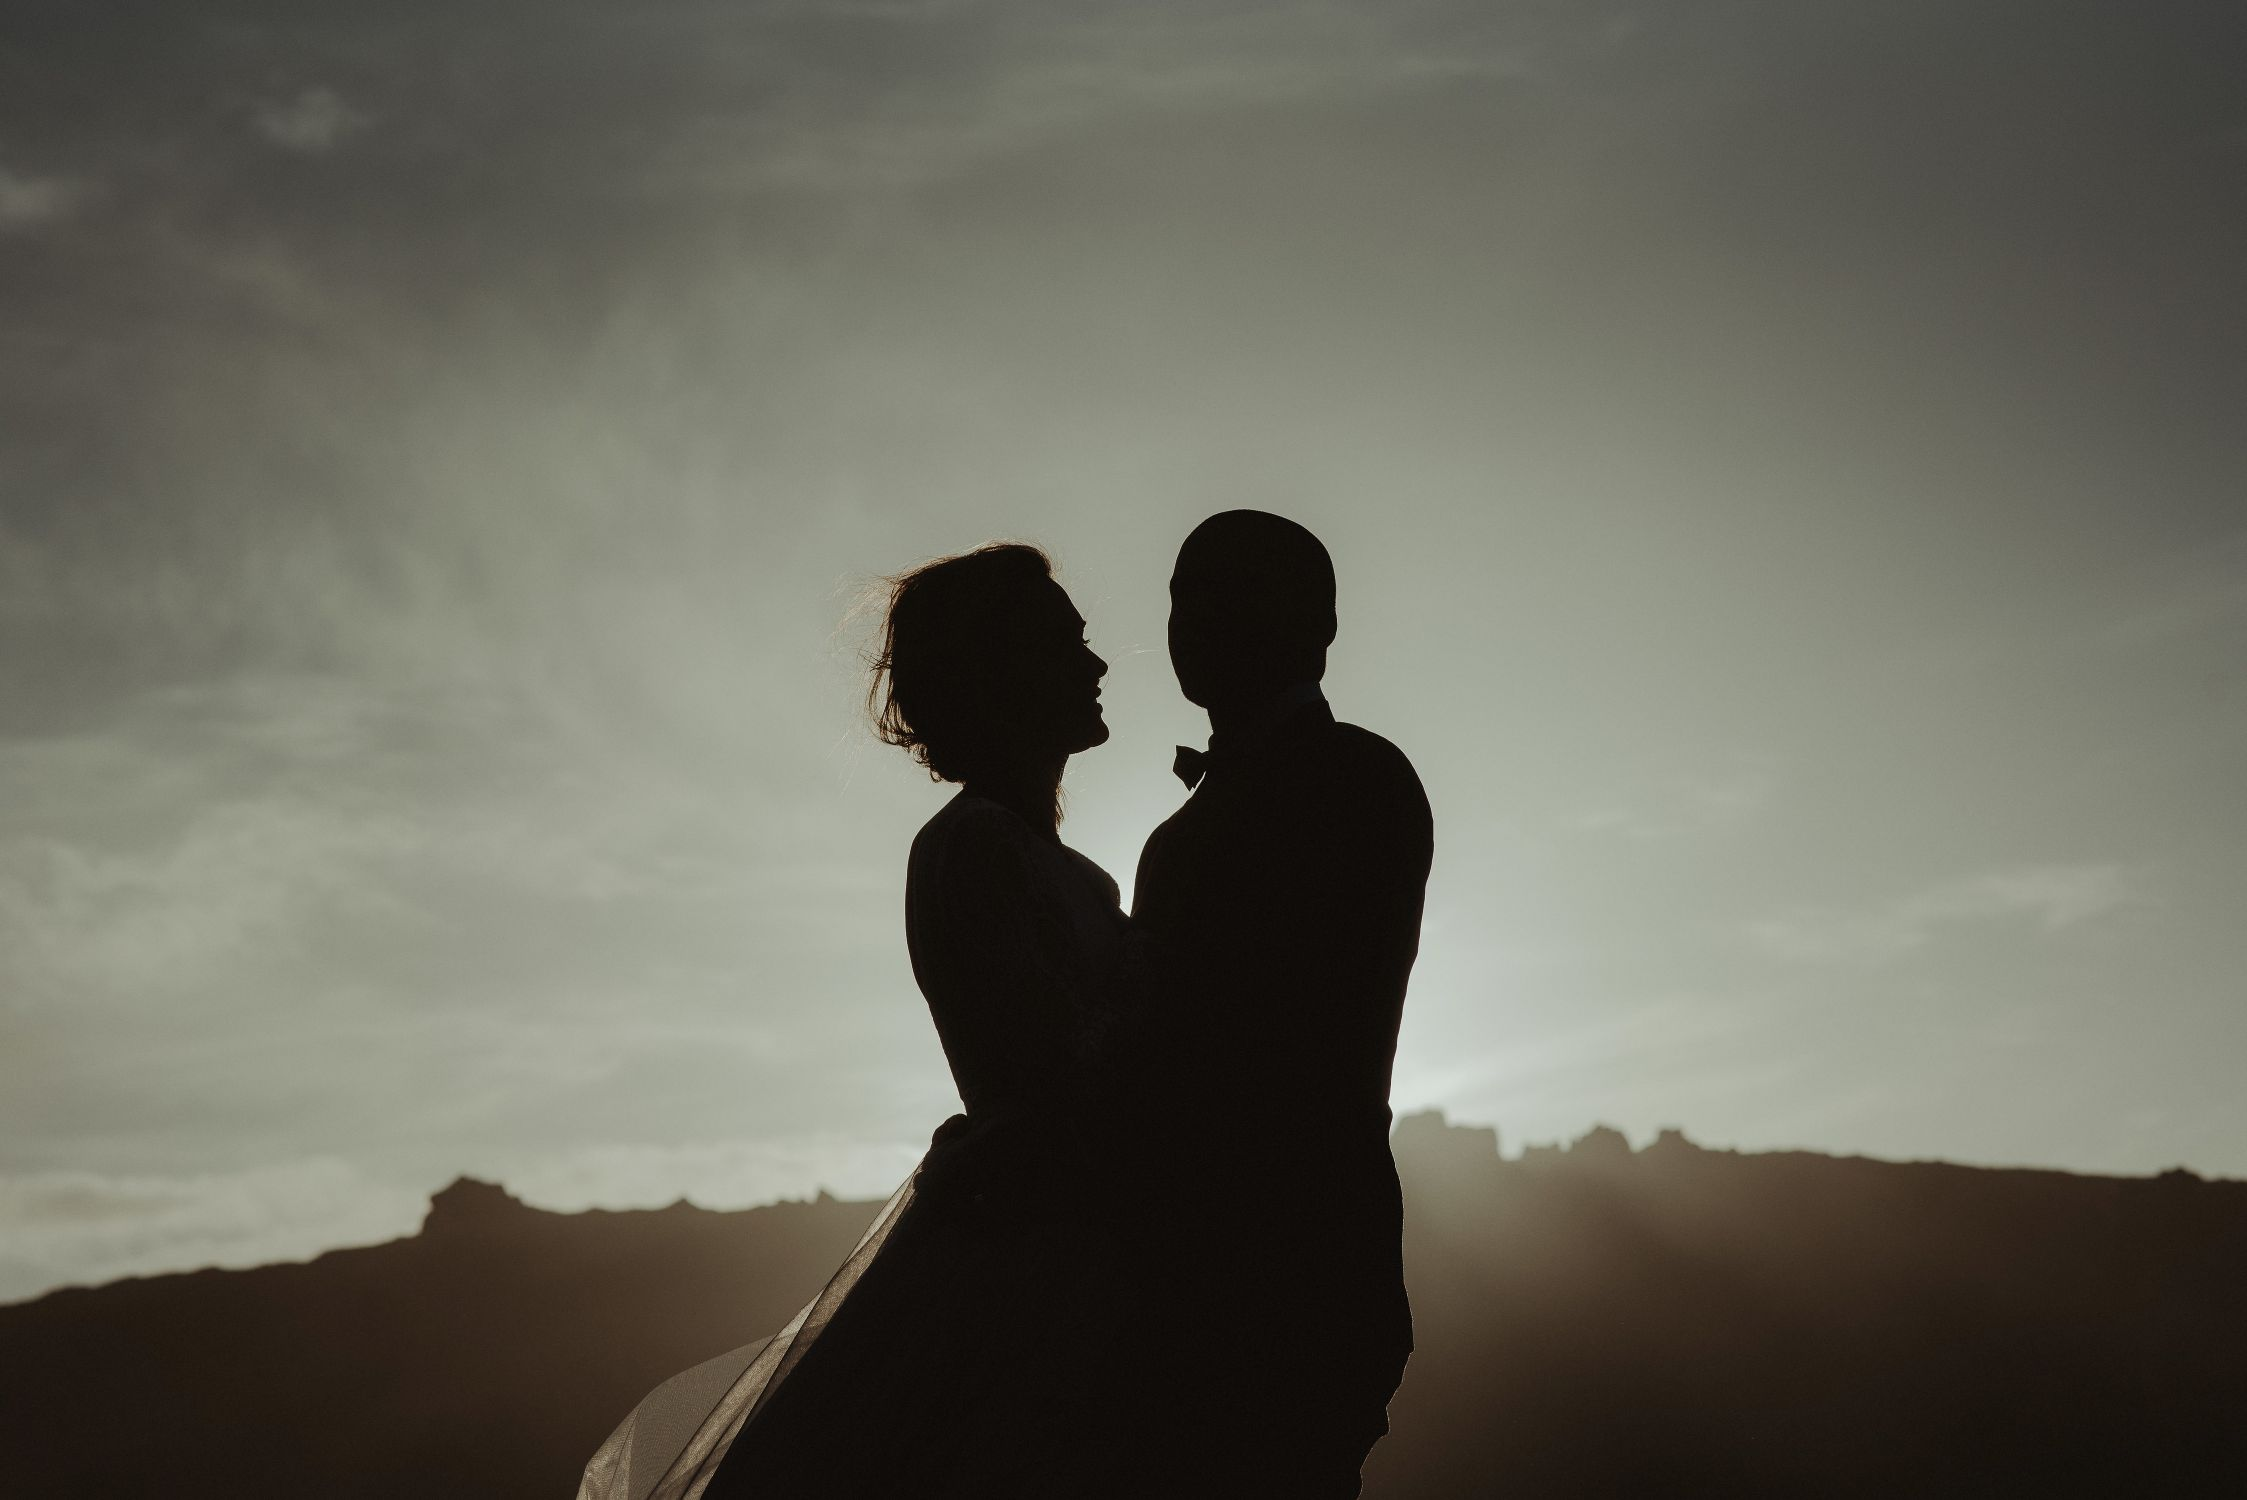 Snaefellsnes silhouette of couple